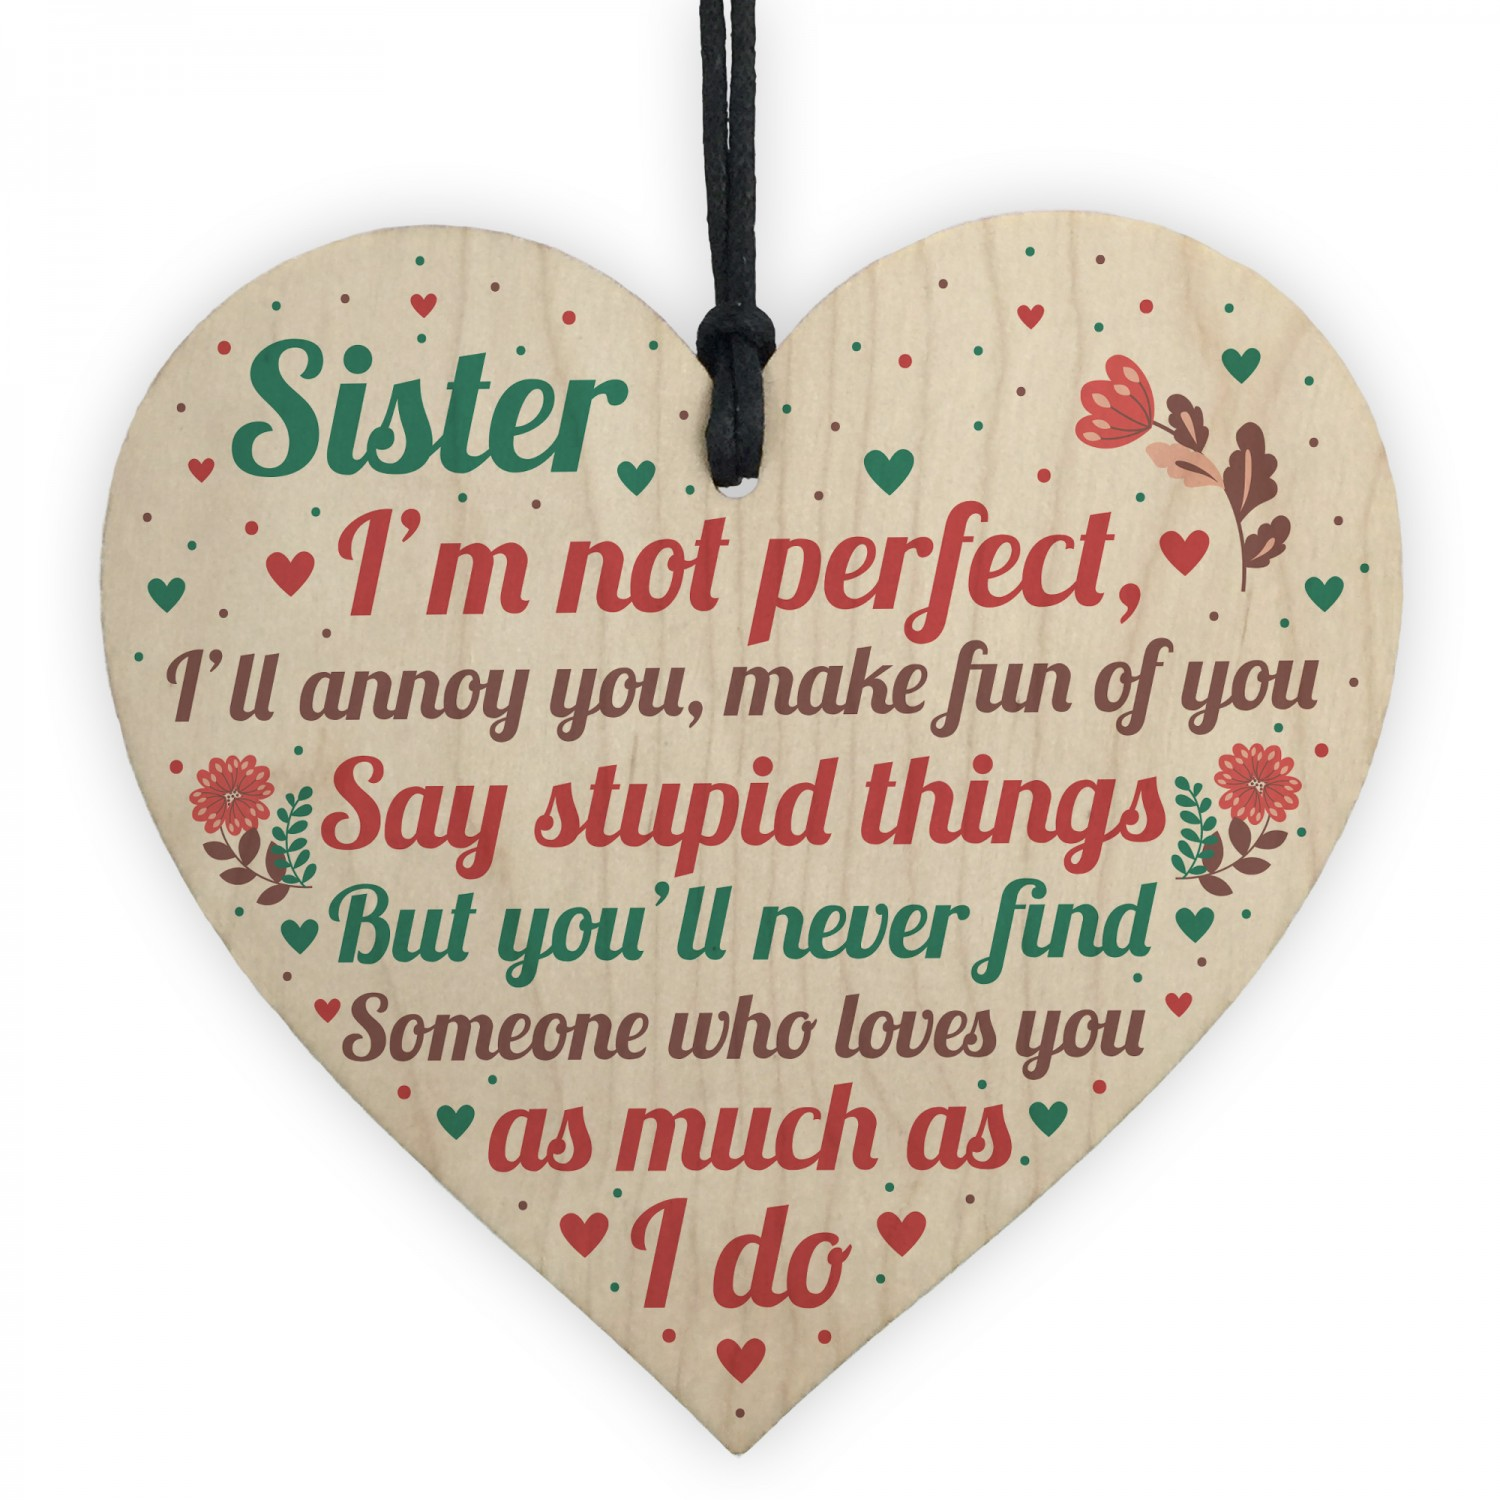 Funny Sister Birthday Christmas Card Gifts Wood Heart ...